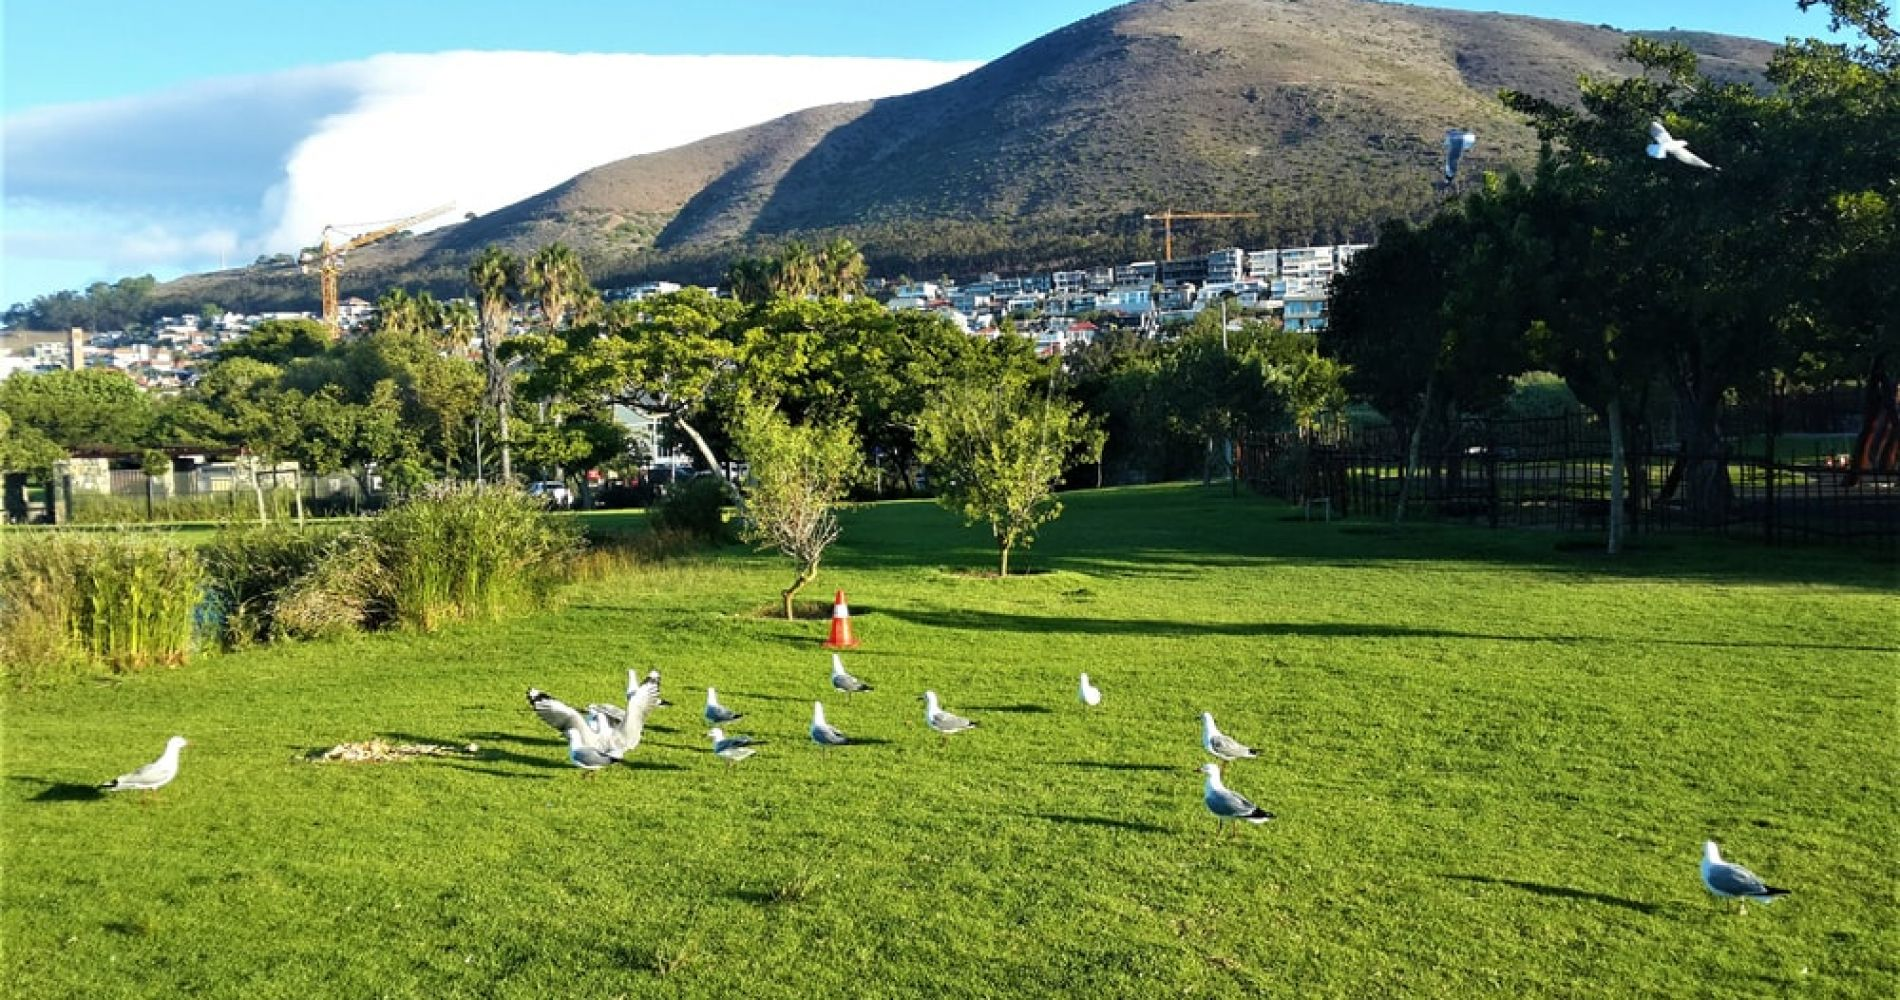 Spend an Afternoon in the Green Point Urban Park in Cape Town